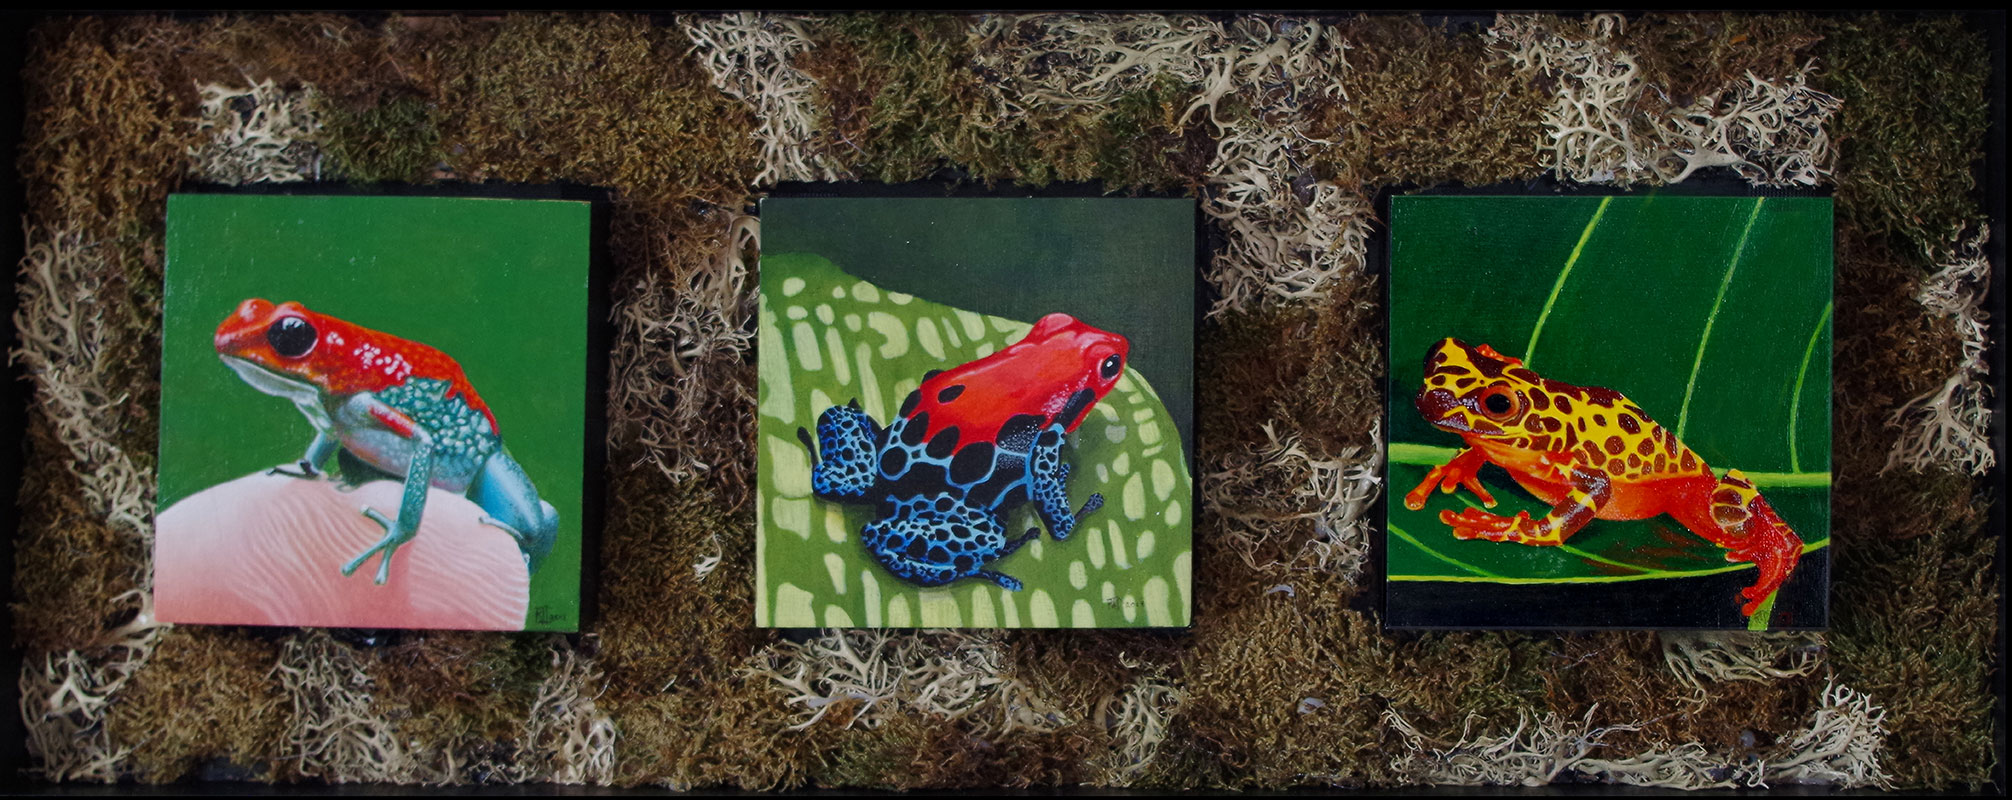 The Sopranos #3 Poison arrow frog, Poison arrow frog ,Clown tree frog by Bob 'Omar' Tunnoch